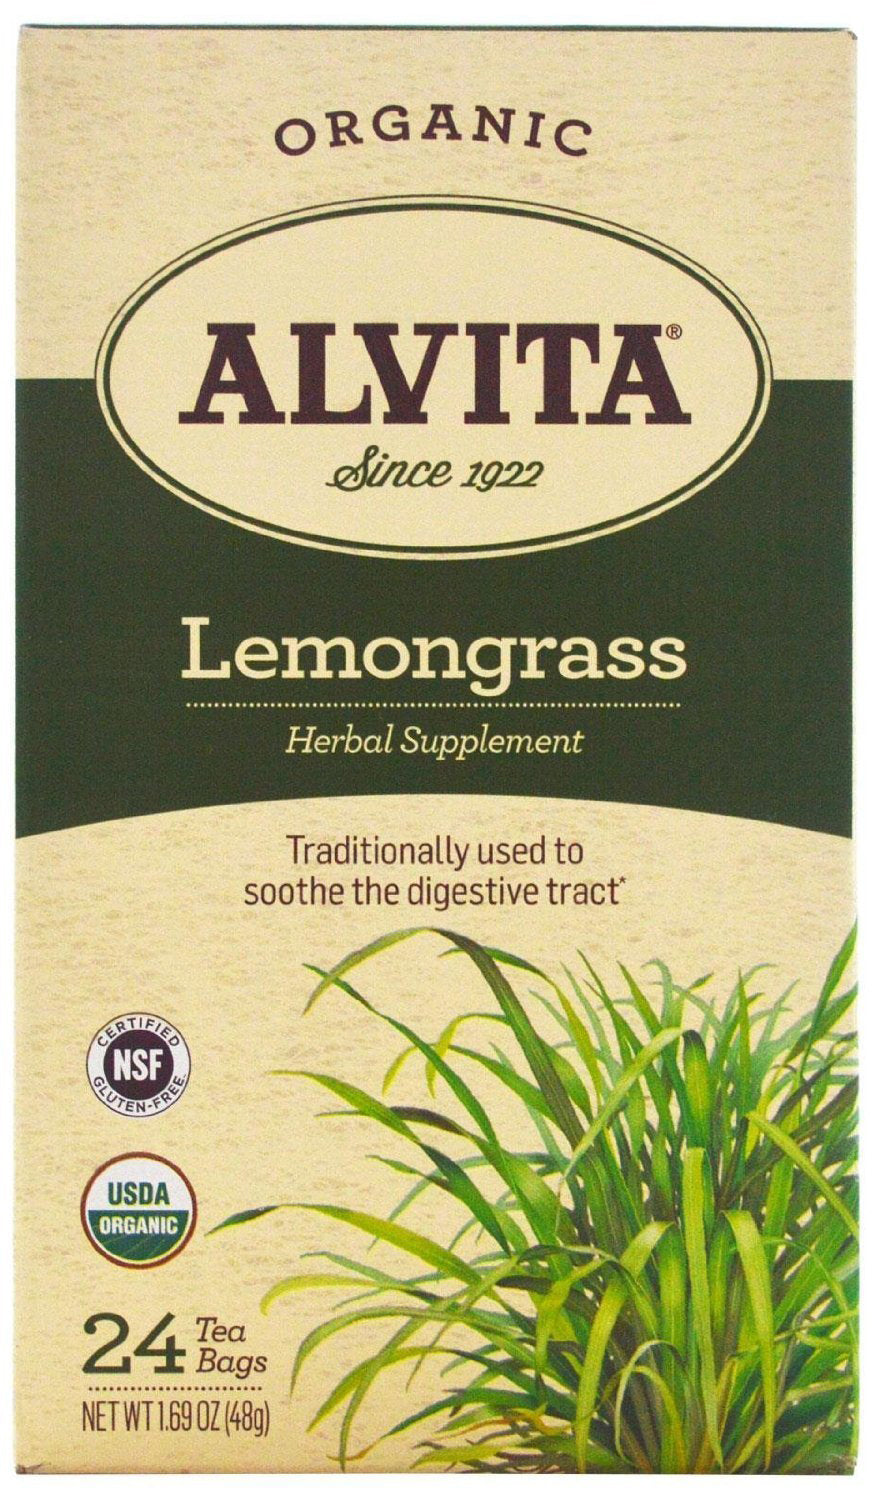 Organic Lemongrass, 24 Tea Bags